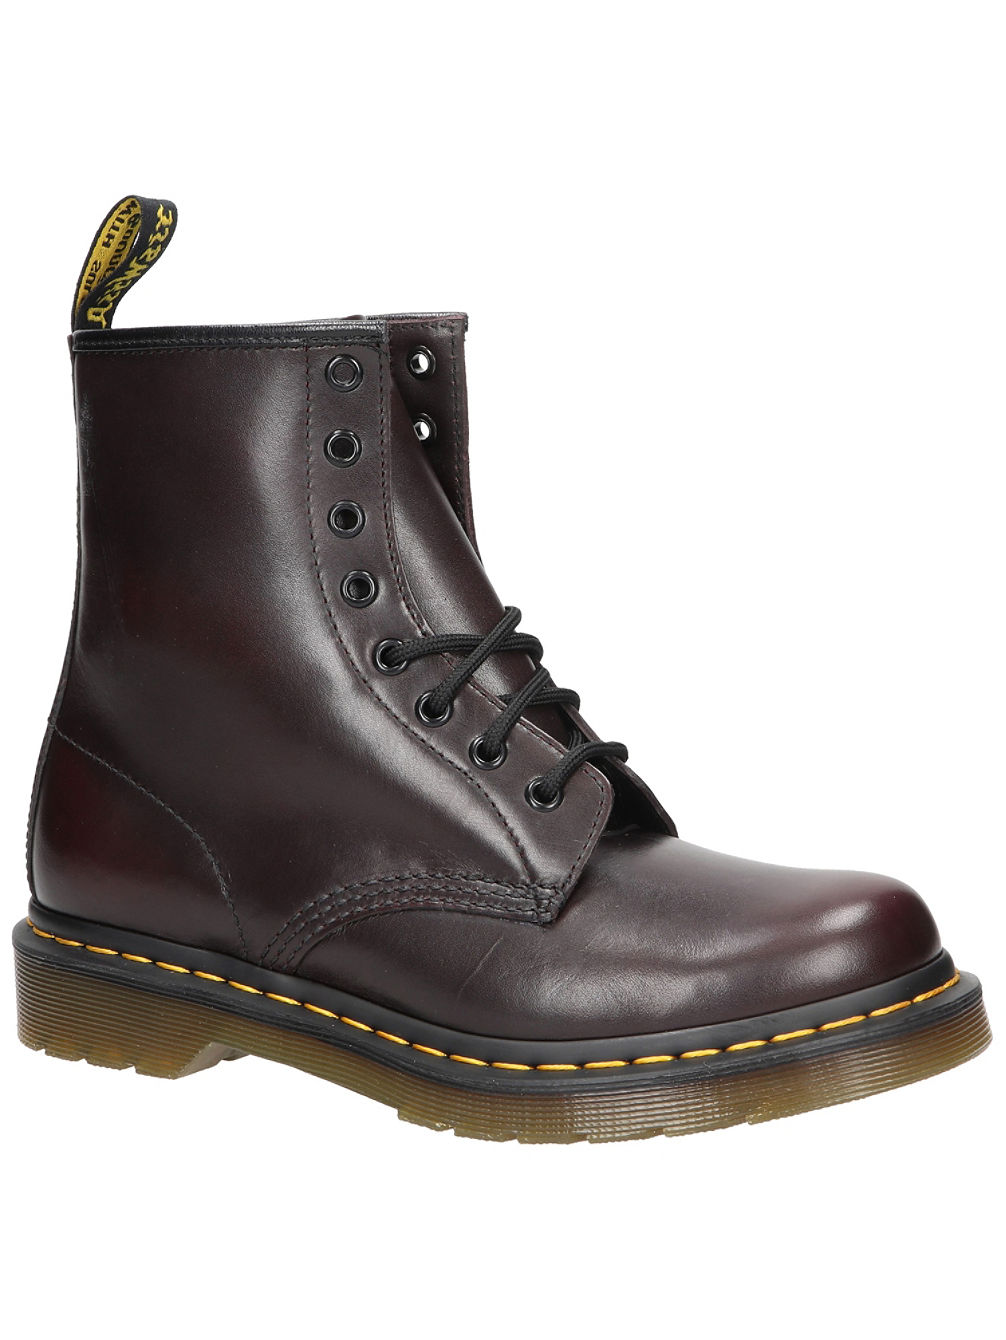 1460Z DMC VT-R 8 Eye Vintage Boots Women